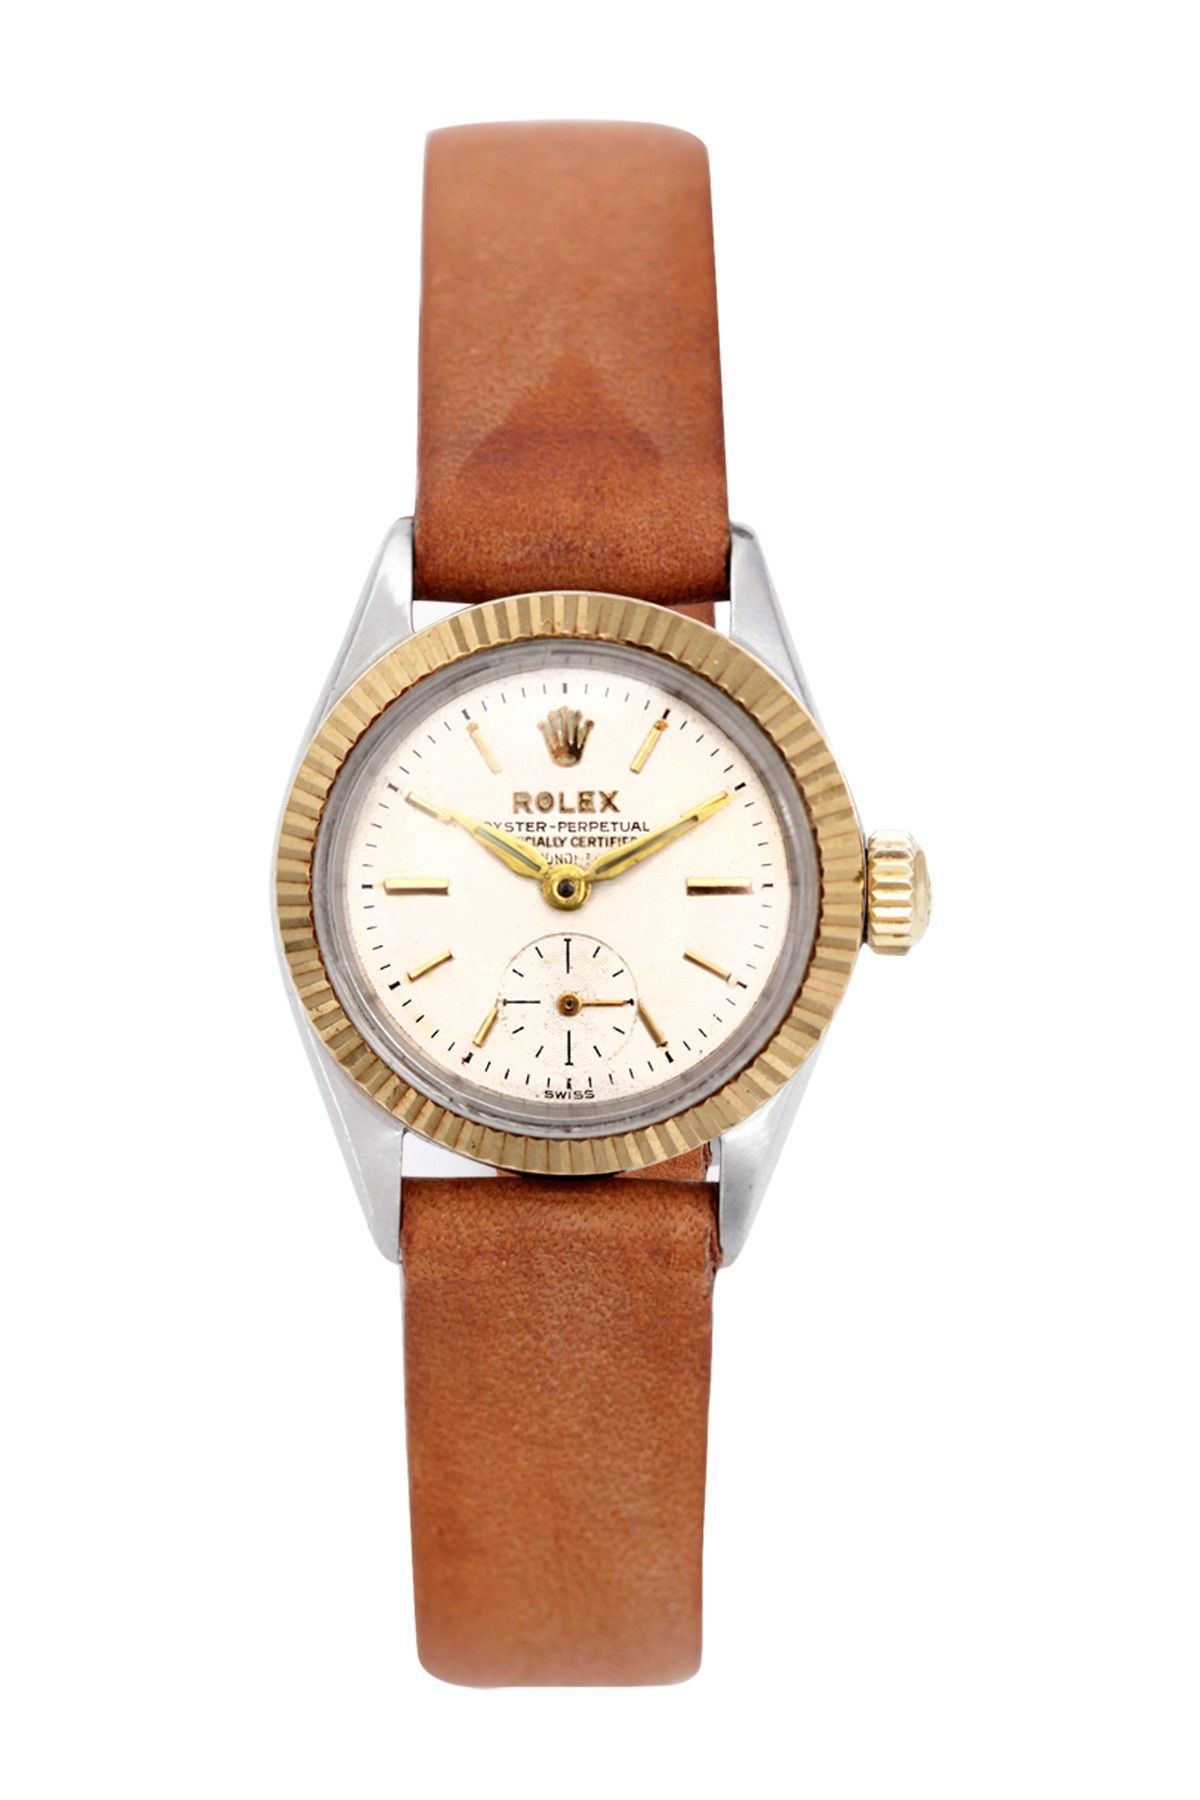 5e7a1b88ce20 Vintage Rolex Women's Oyster Perpetual Leather Band Watch ...